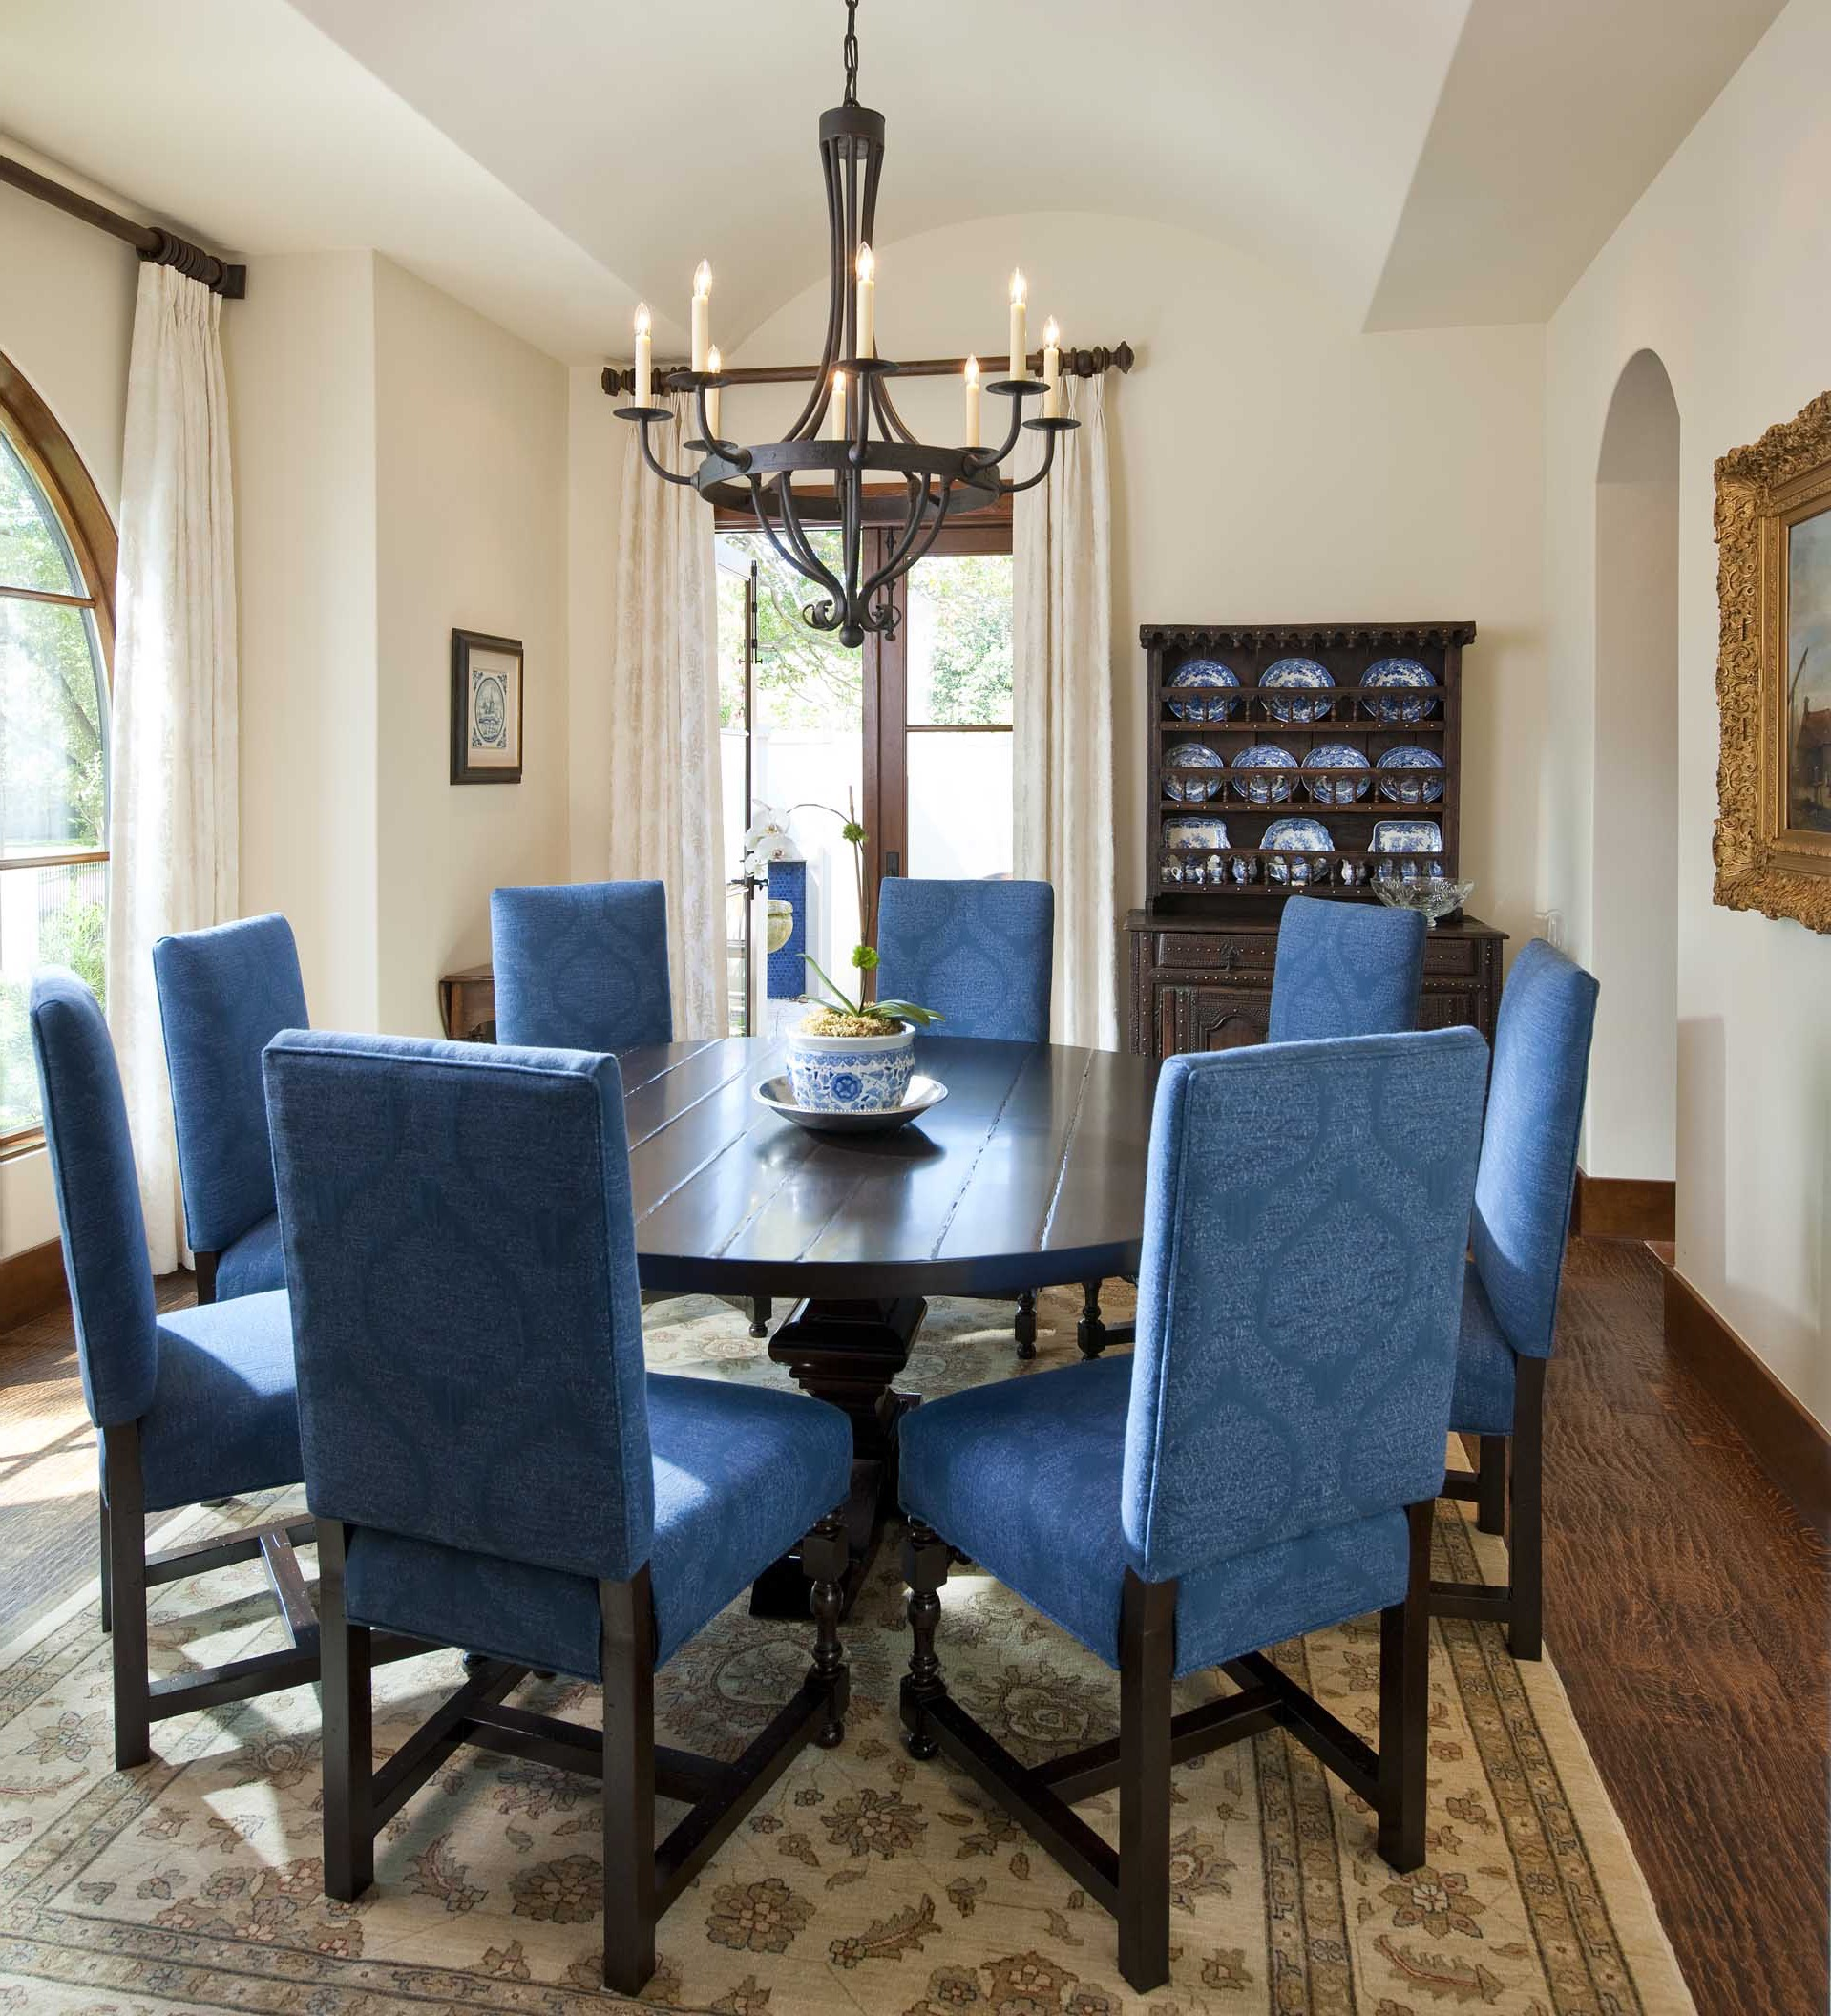 Classic Spanish Dining Room Design Style (View 5 of 11)